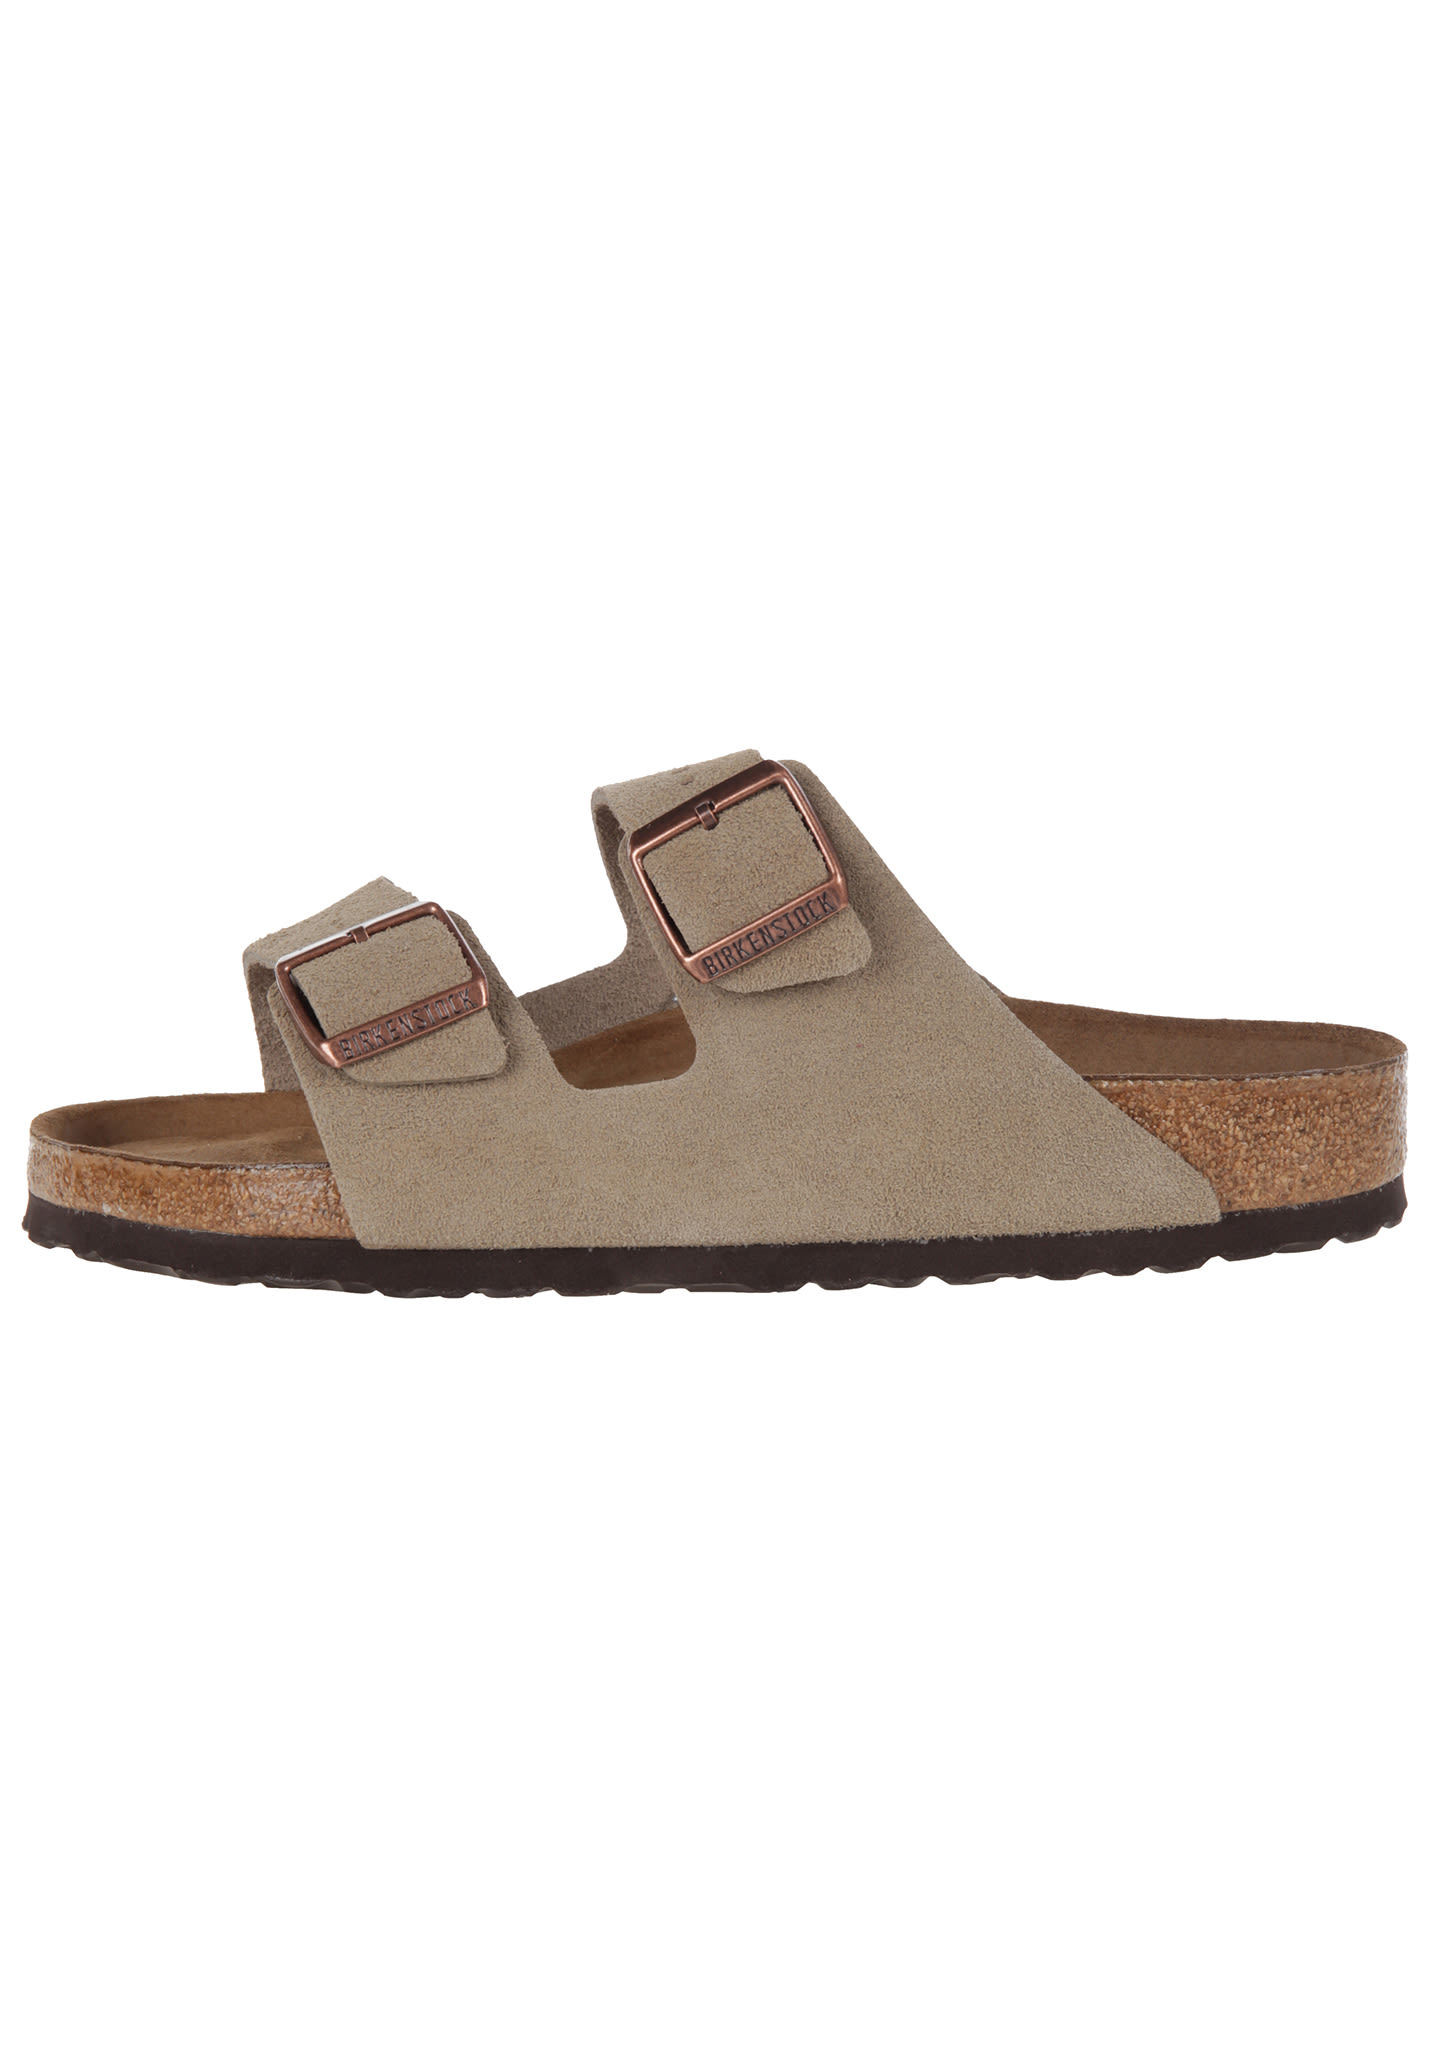 6b47cb03fb10 Birkenstock Arizona VL Soft - Sandals for Men - Grey - Planet Sports